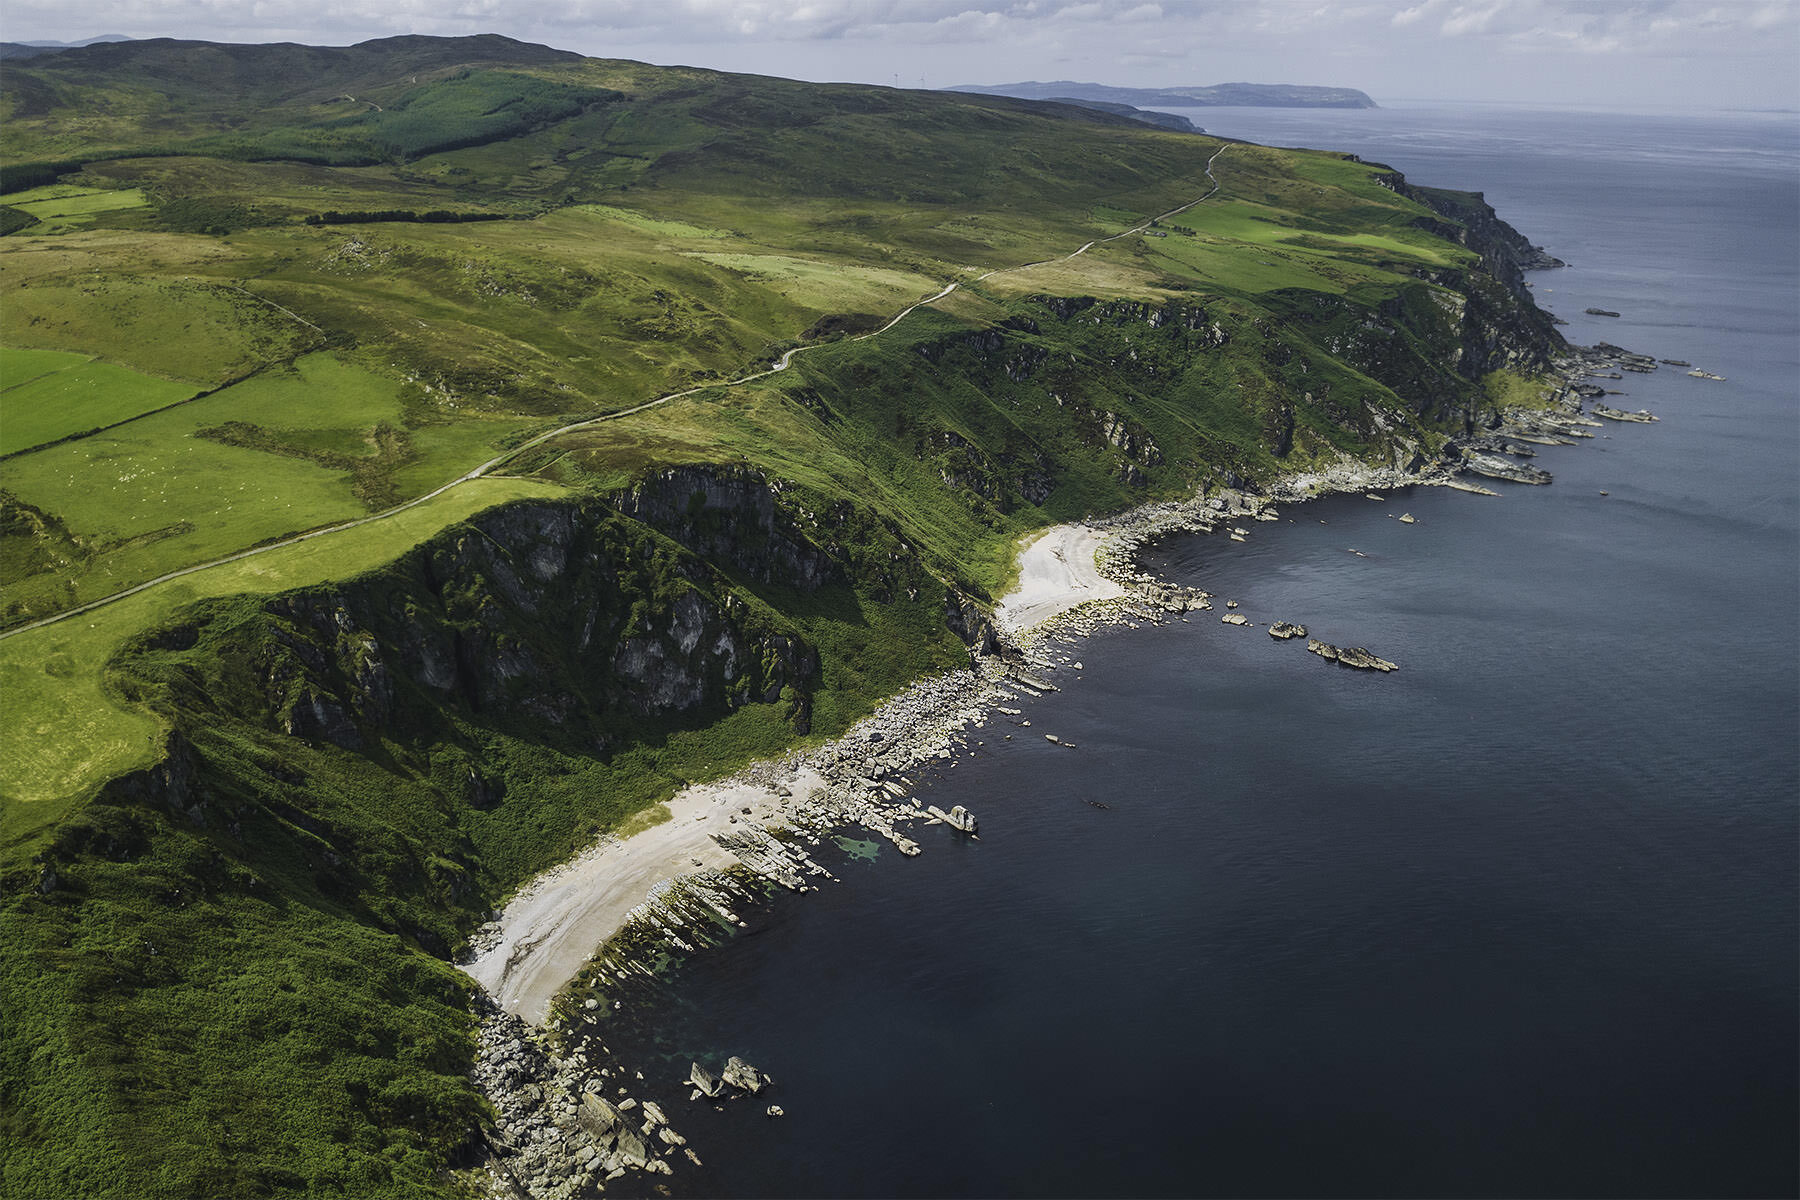 travel-ireland-donegal-inishowen-cliffs-beach.jpg